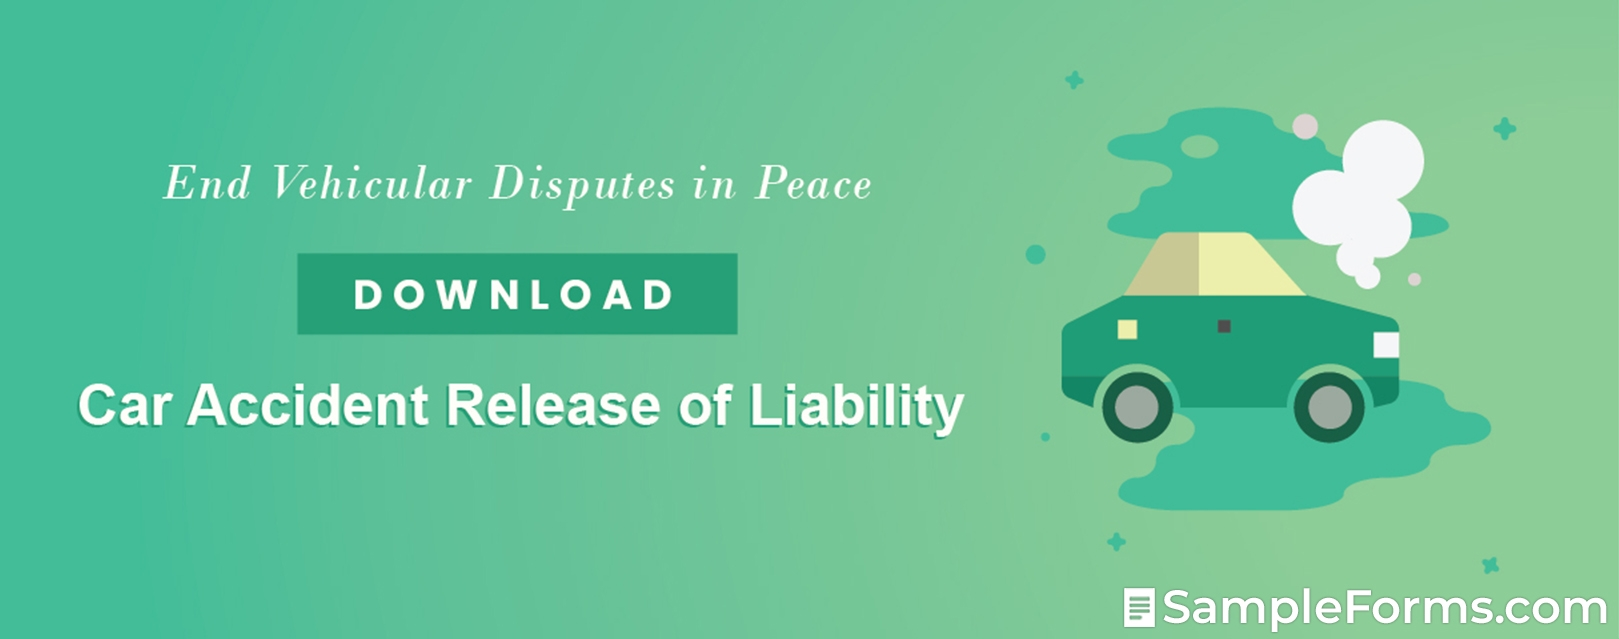 Car Accident Release of Liability